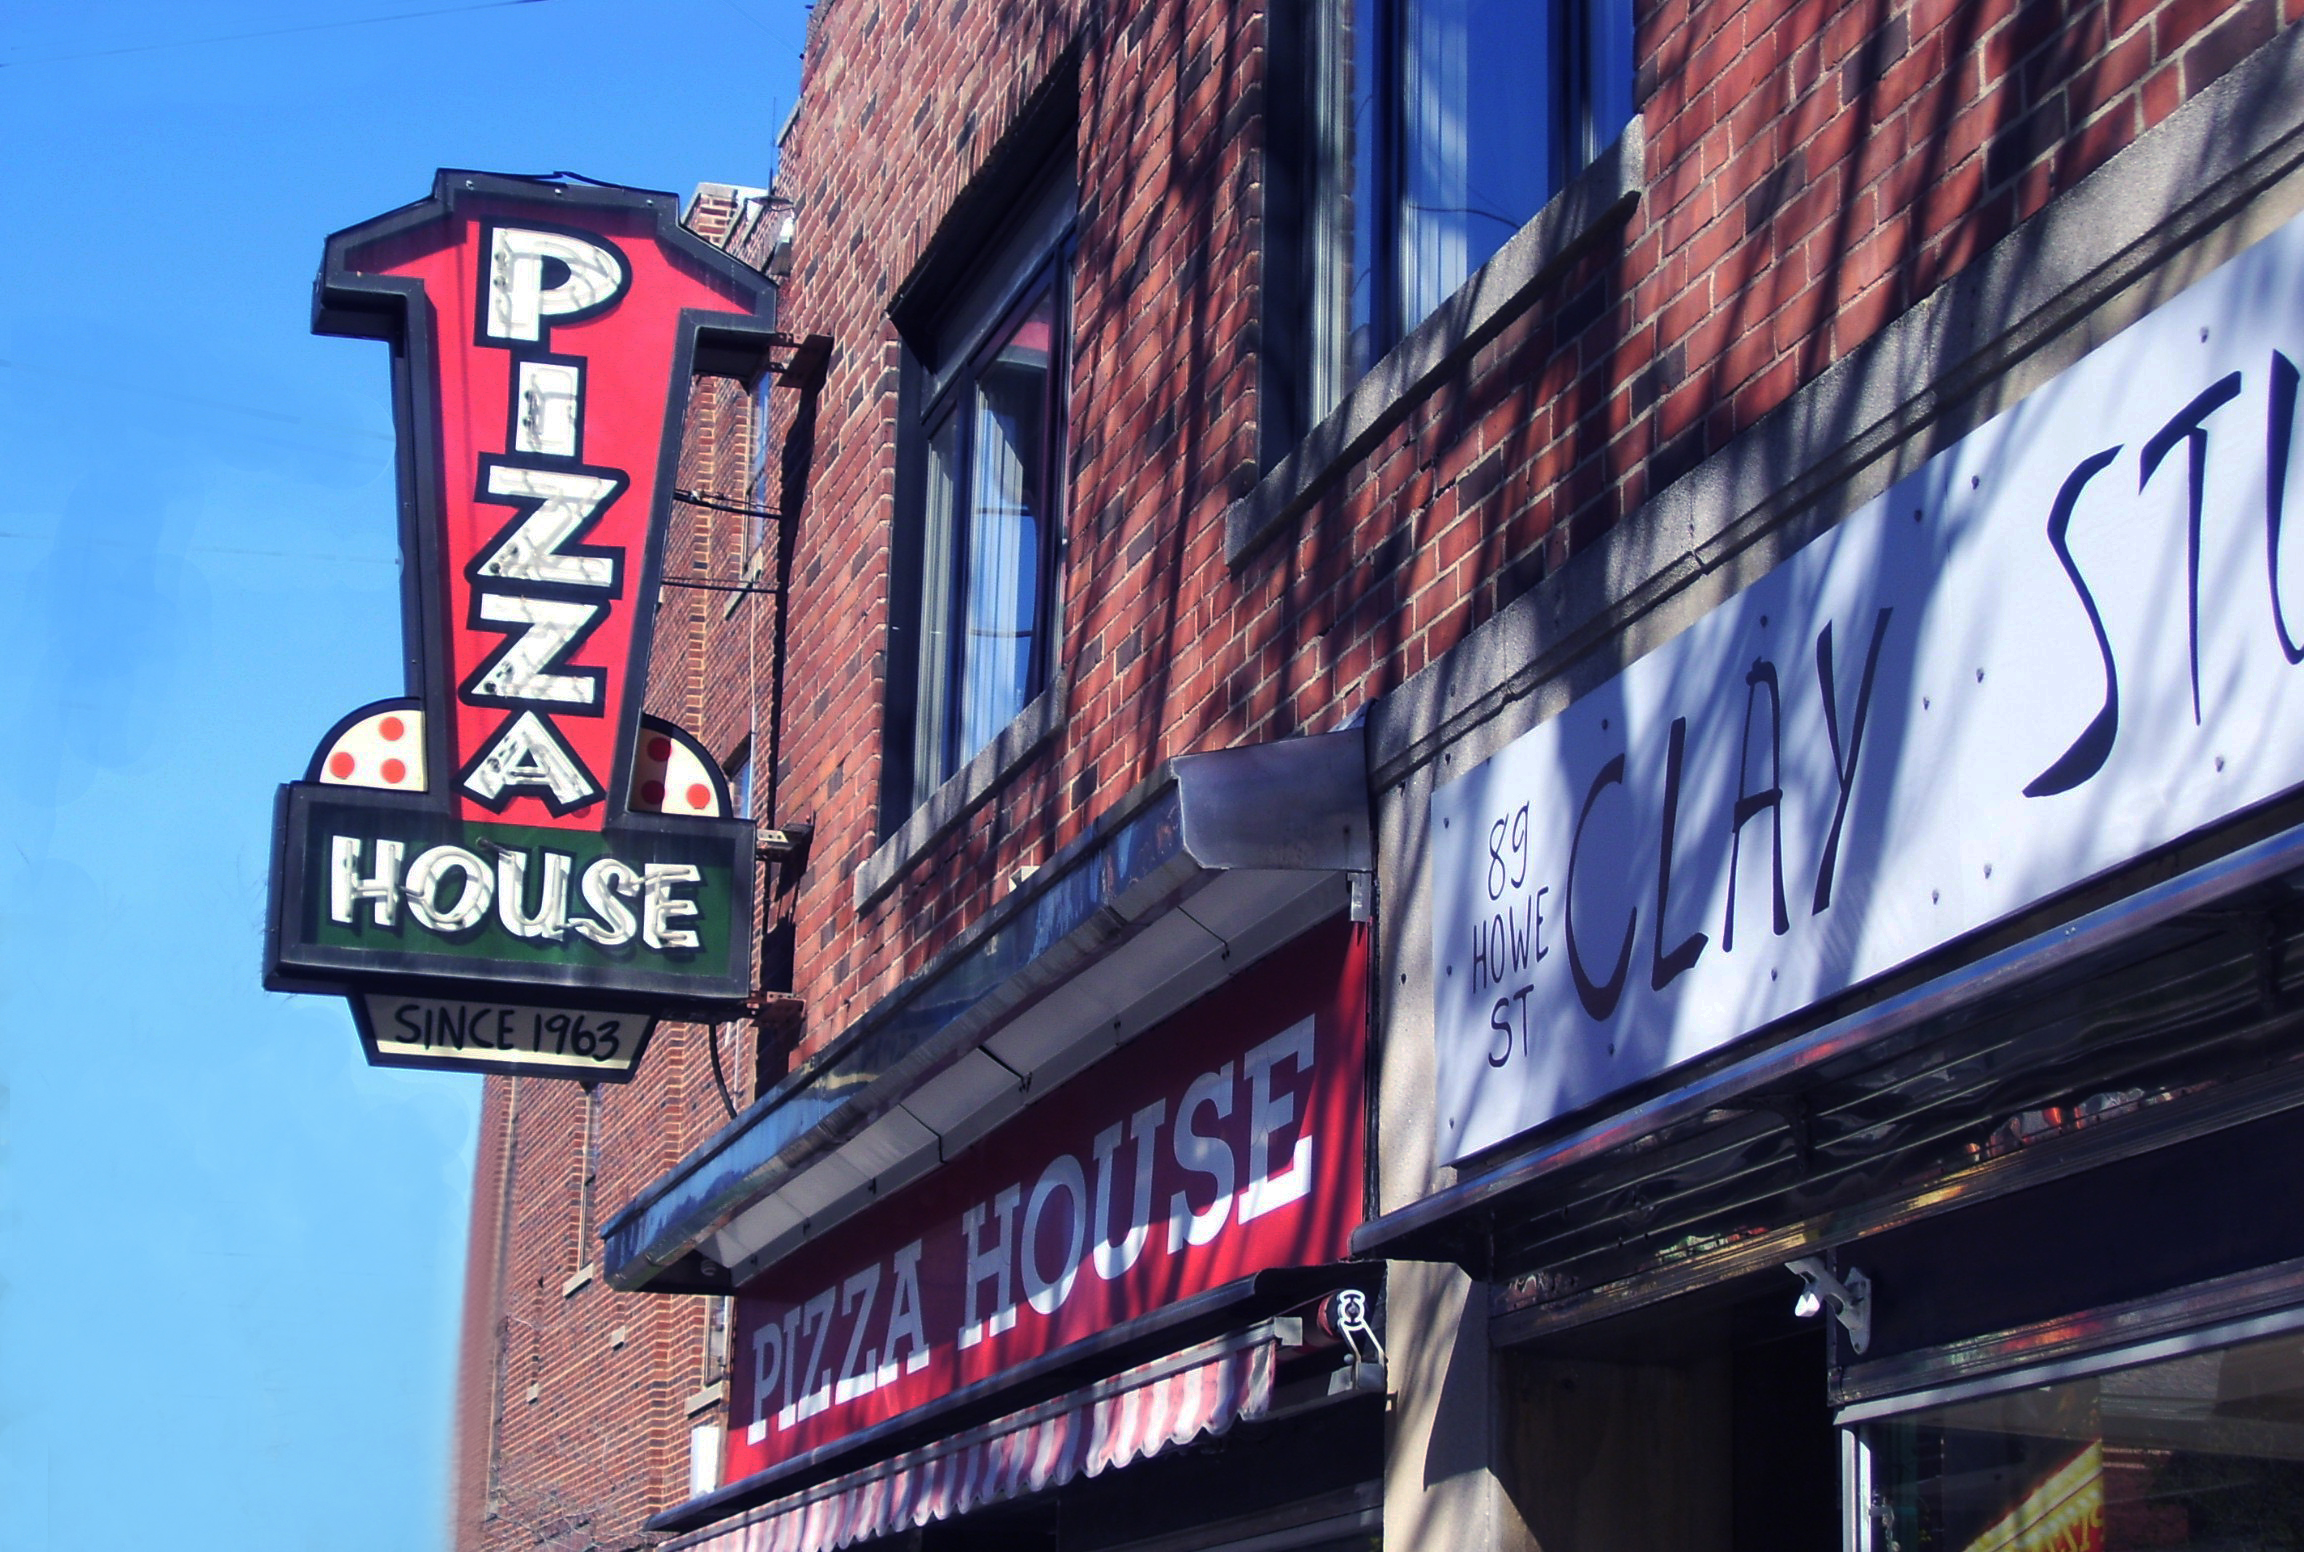 Pizza House 89 Howe Street (203) 865-3345